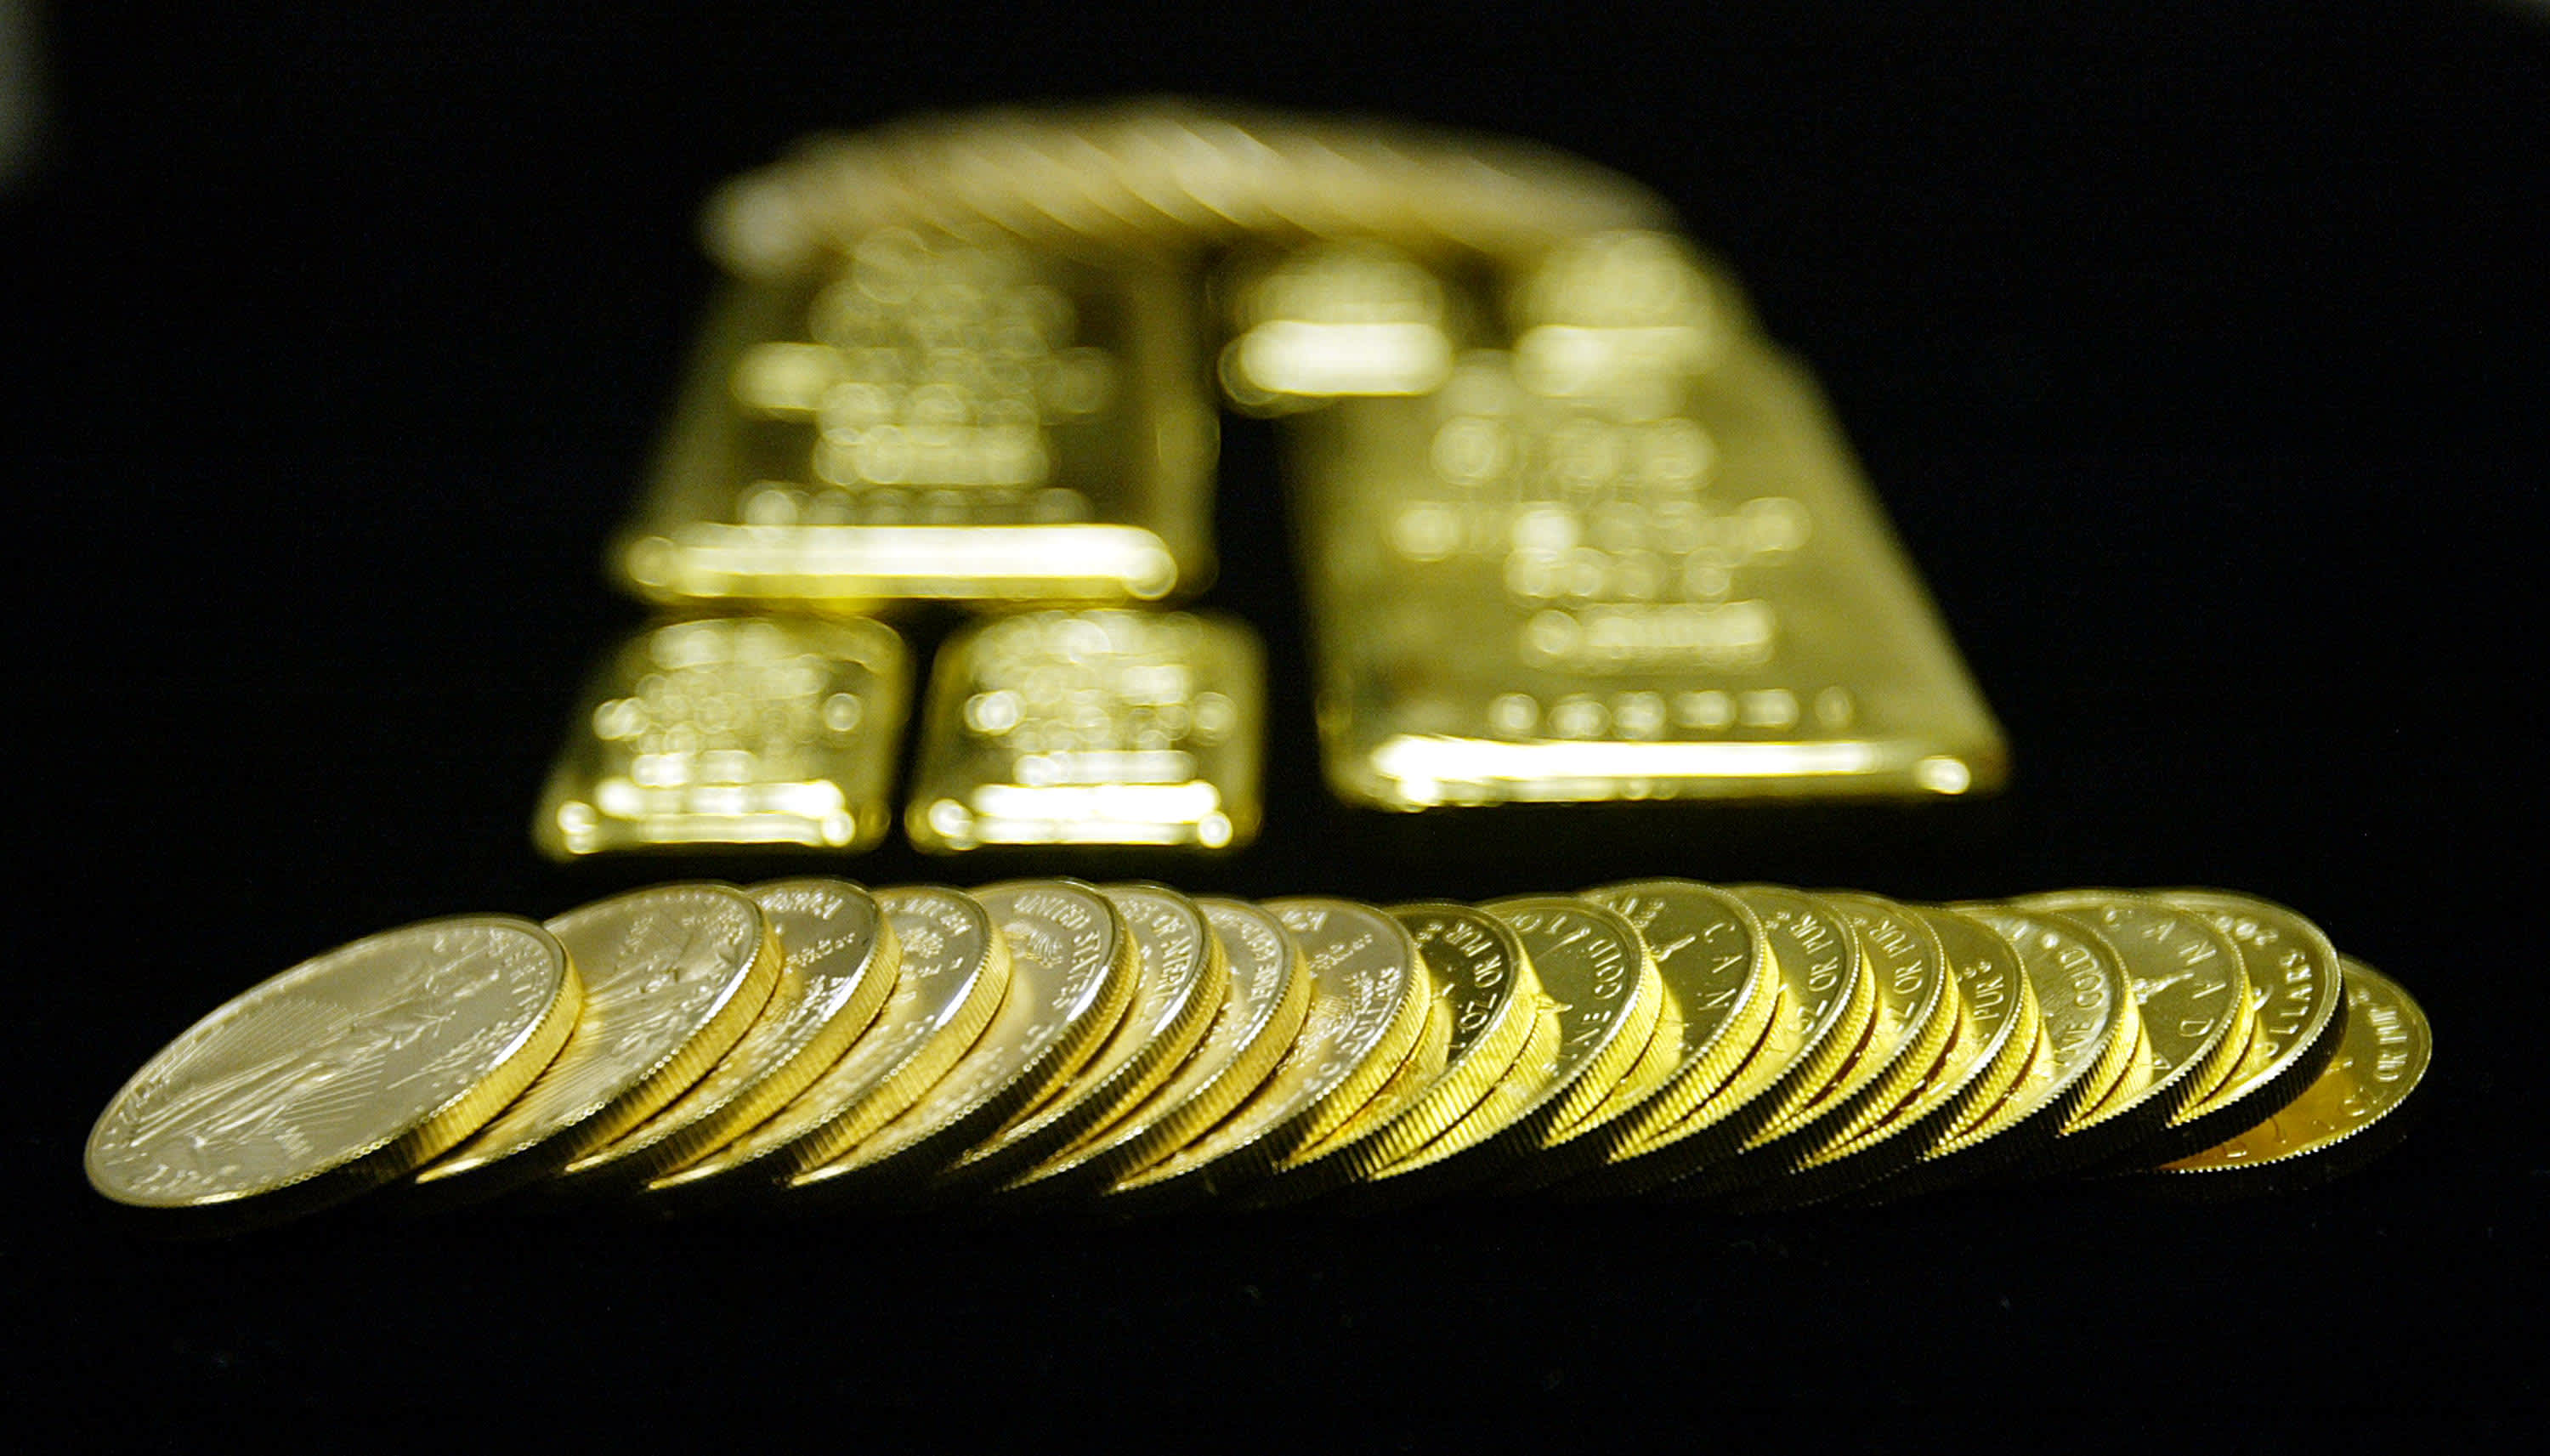 Reusable Gold coins and bars